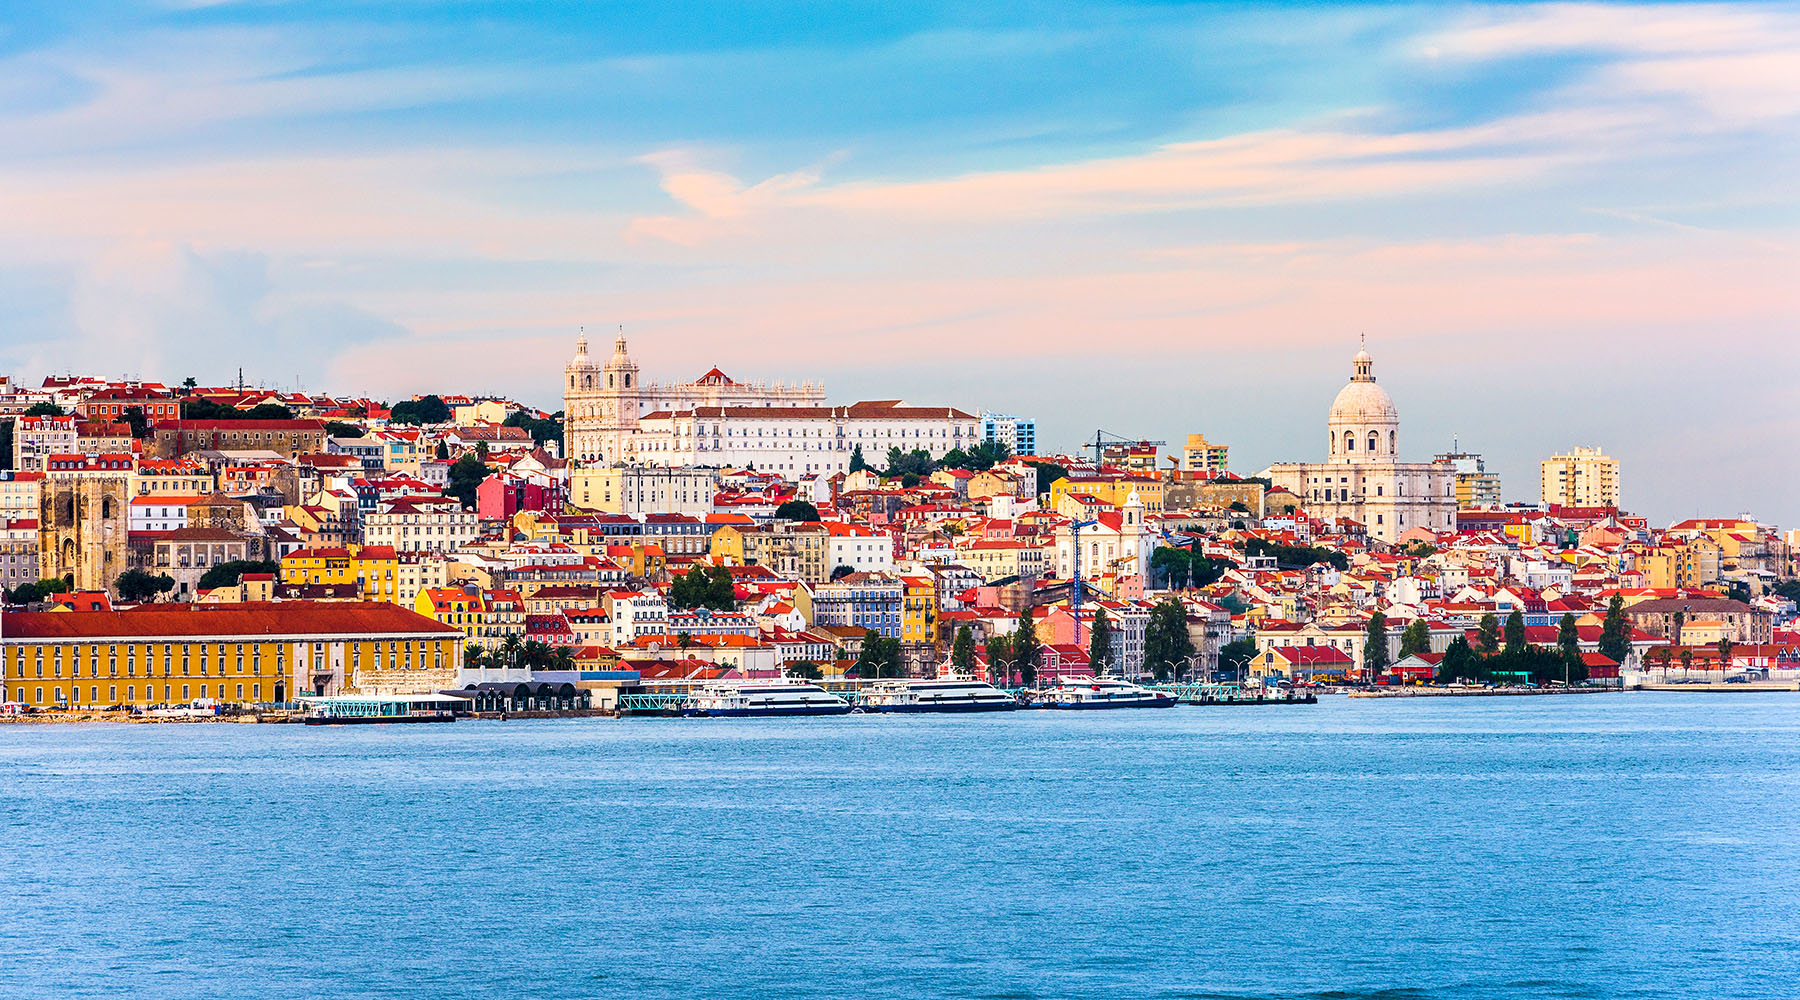 Lisbon skyline from the water